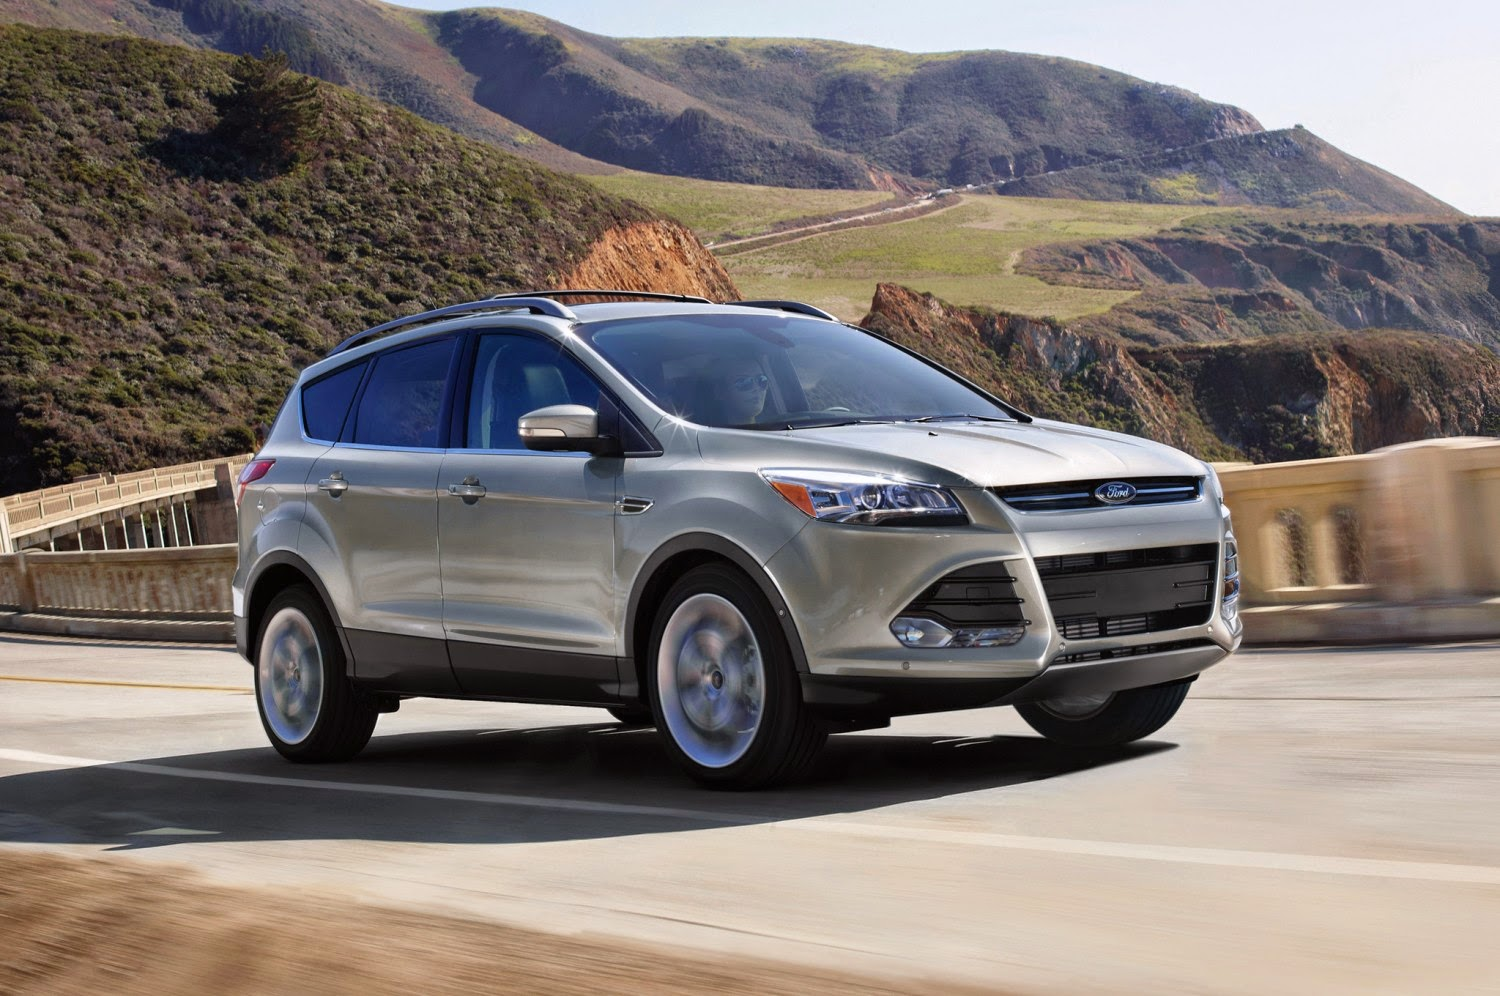 Fusion, Explorer & Escape Help Ford Earn Best July Results in Eight Years